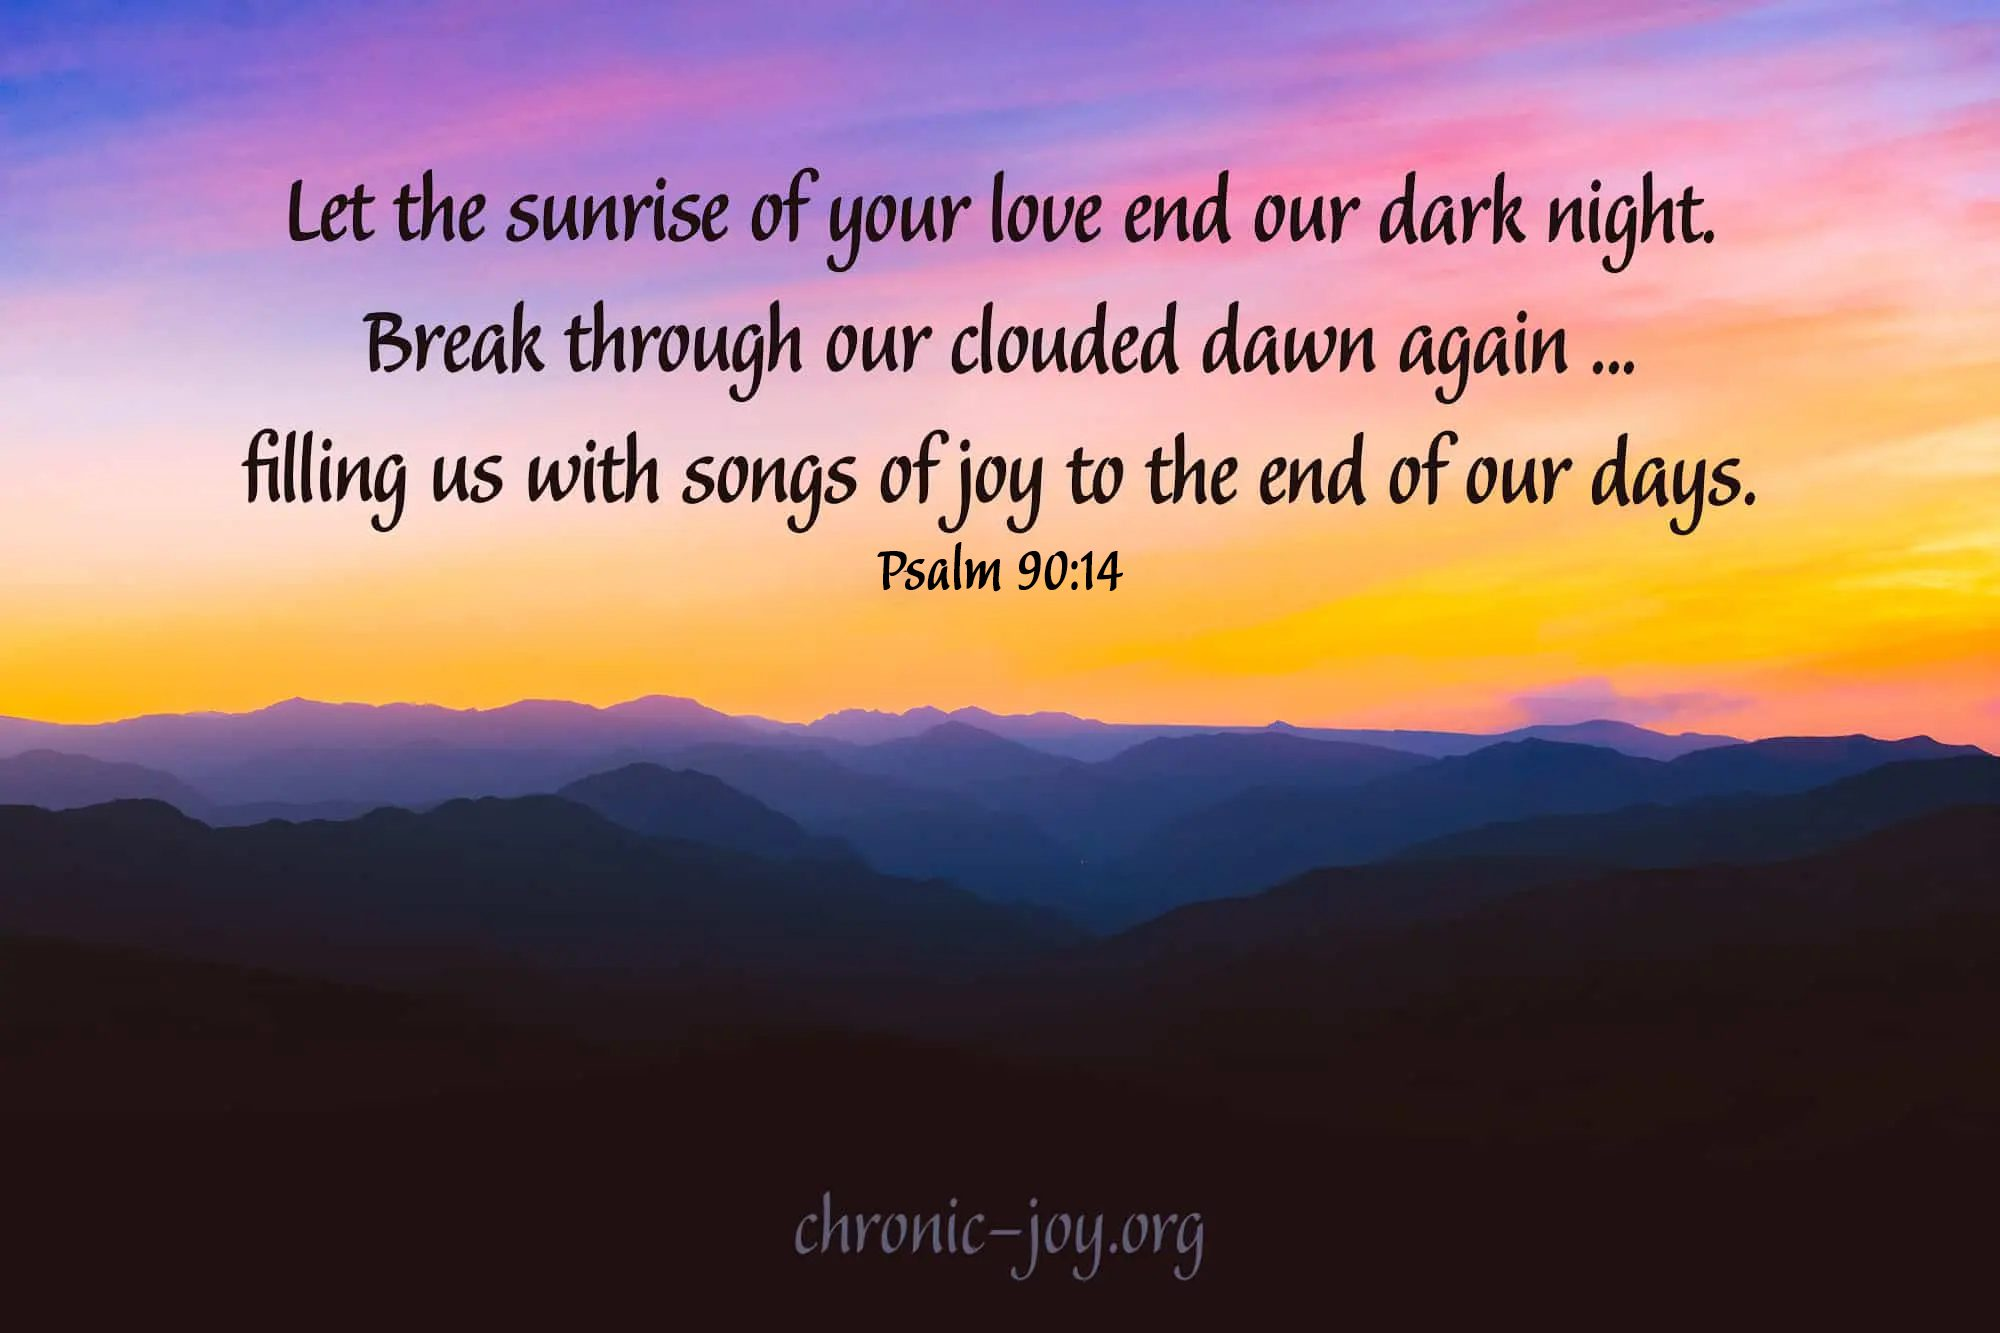 """""""Let the sunrise of your love end our dark night. Break through our clouded dawn again ... filling us with songs of joy to the end of our days. """"Psalm 90:14 TPT"""